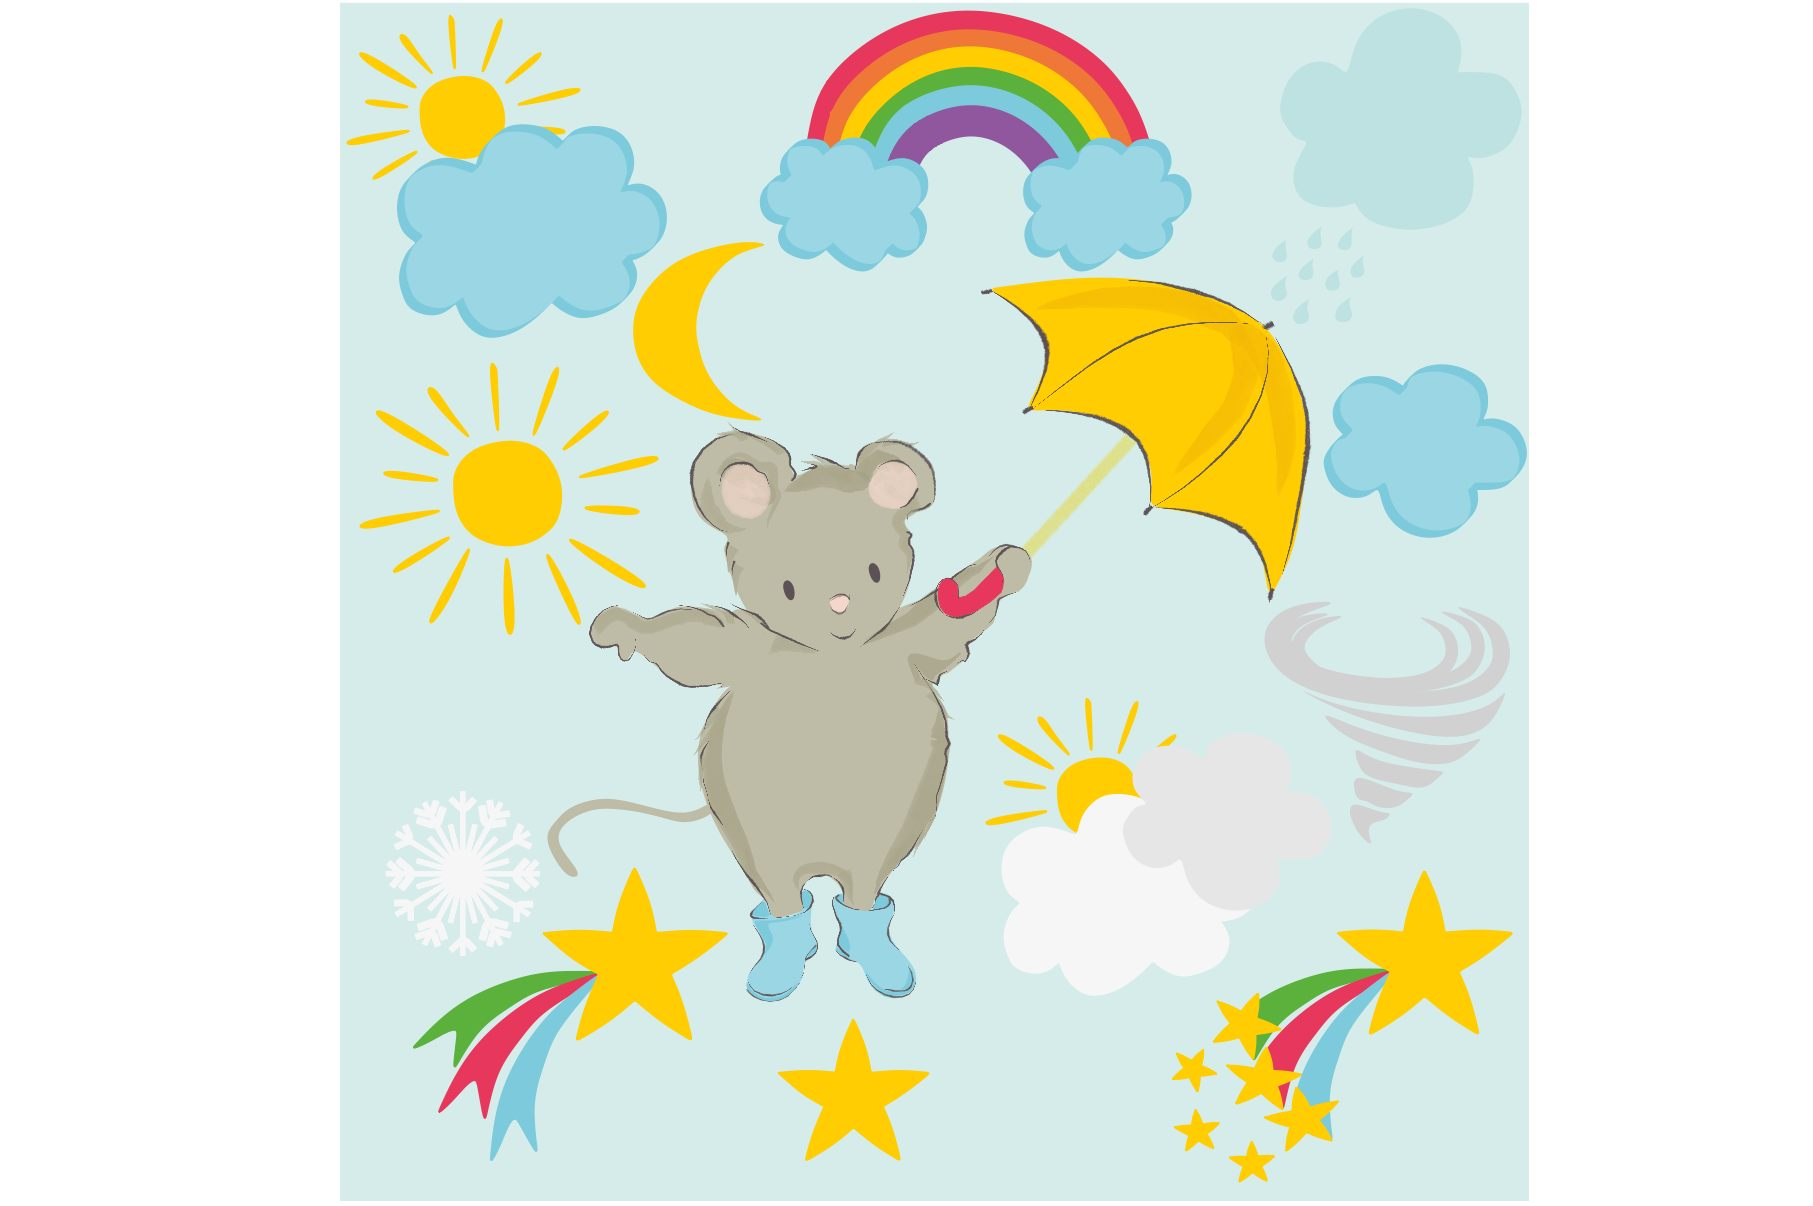 Weather Clipart example image 3